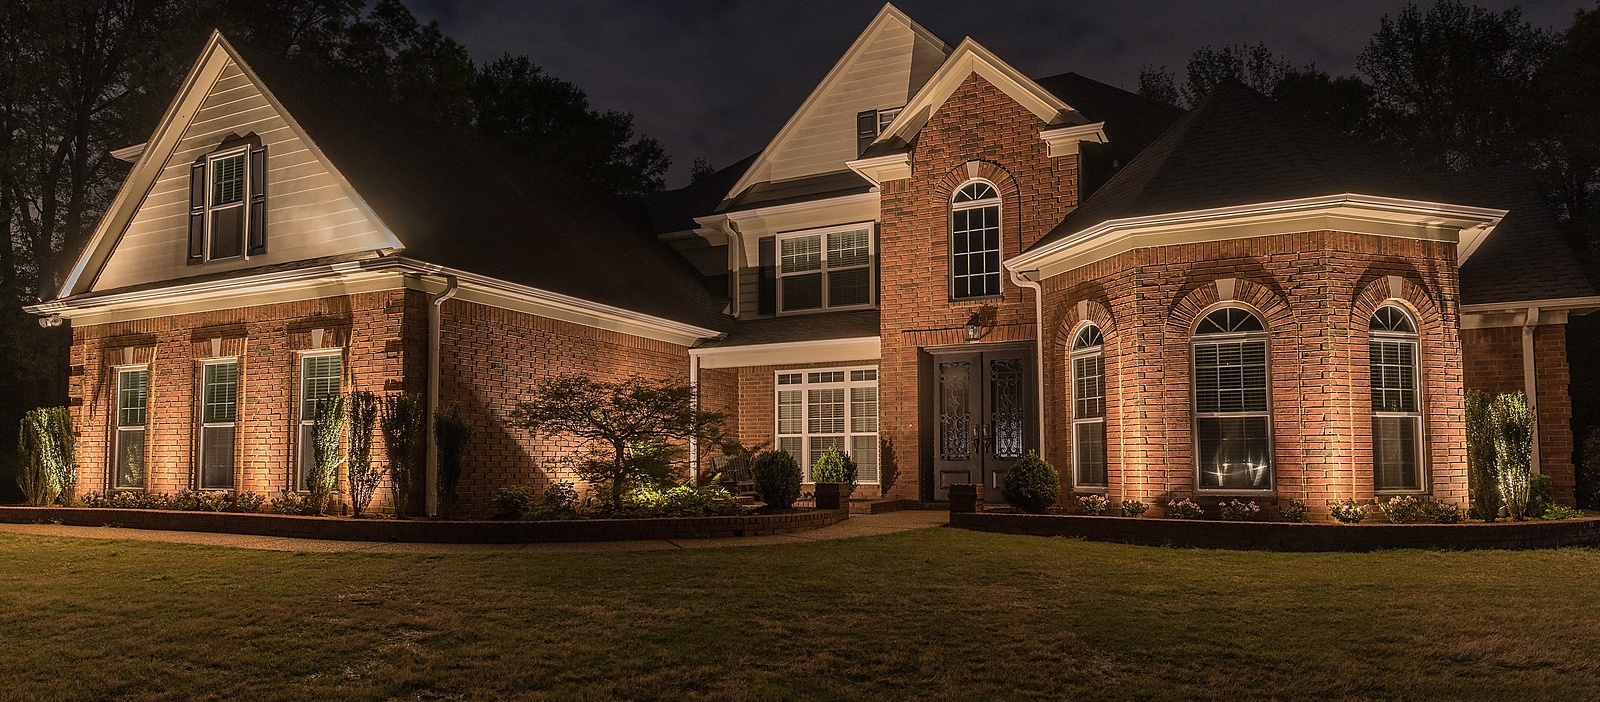 Architectural Lighting on House in Memphis, TN